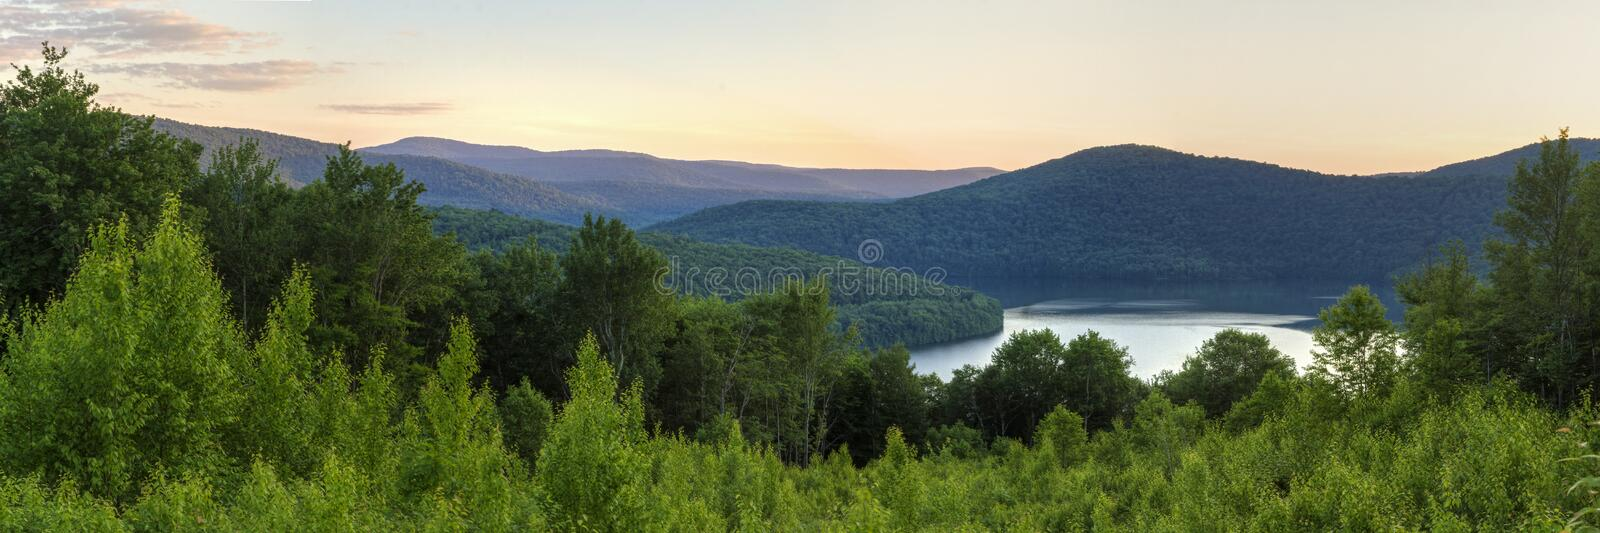 Download Pepacton Reservoir Overlook Panorama Stock Image - Image: 42179461